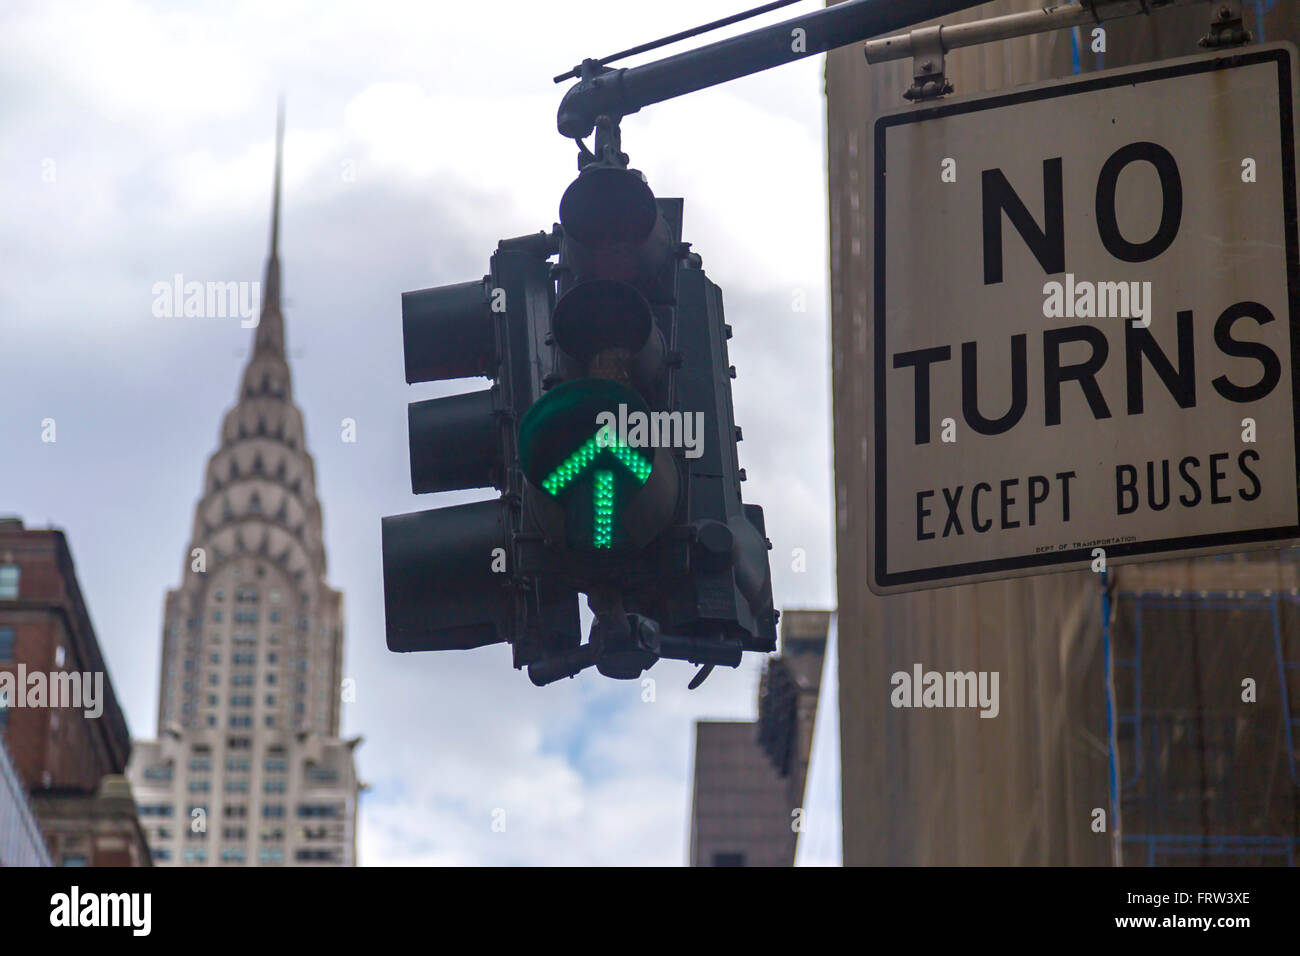 No turns road sign with green traffic light and the Chrysler building in background - Stock Image